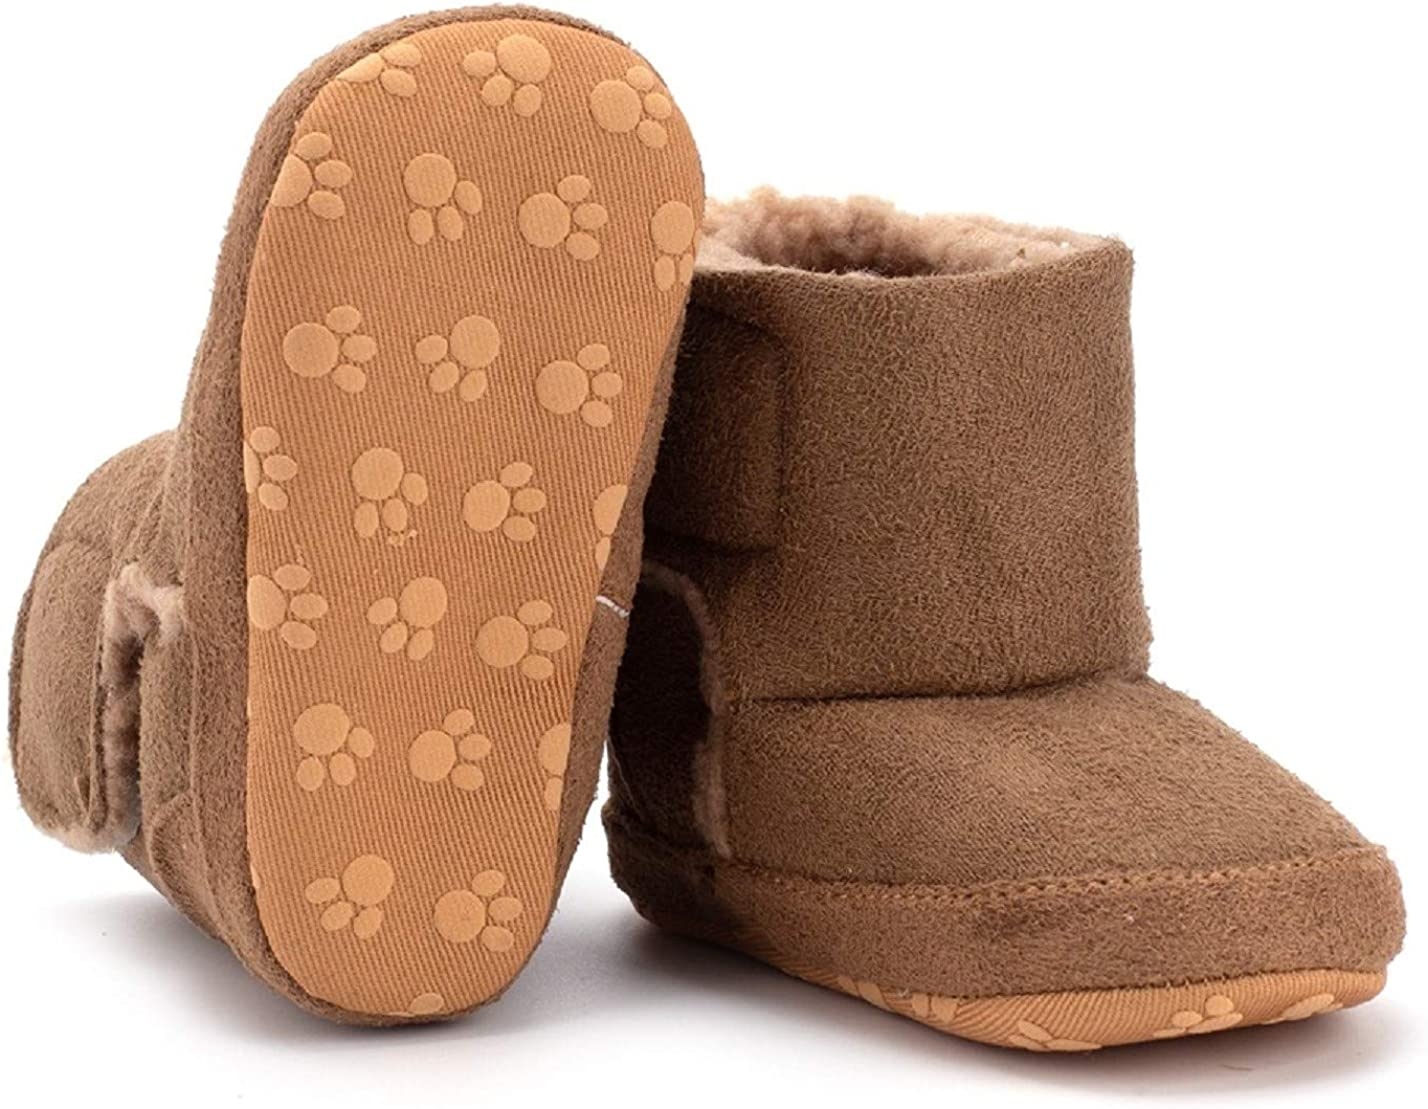 Bebila Warm Winter Baby Boots Many popular brands with Lined New color Fleece Toddler Fur Soft